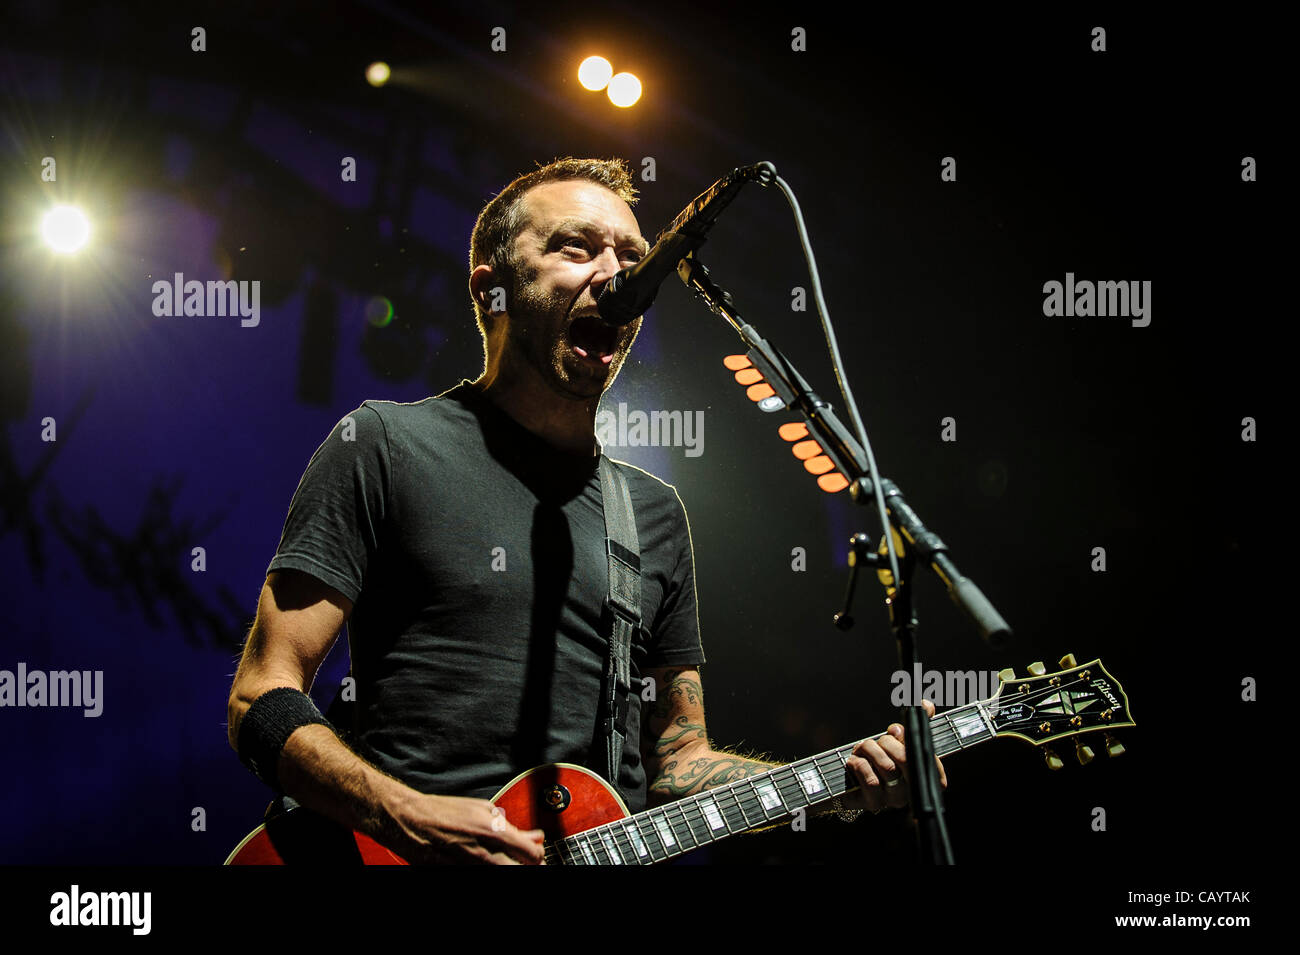 TORONTO, CANADA, 05/10/2012. American punk rock band Rise Against perform live At Air Canada Centre in Toronto during - Stock Image